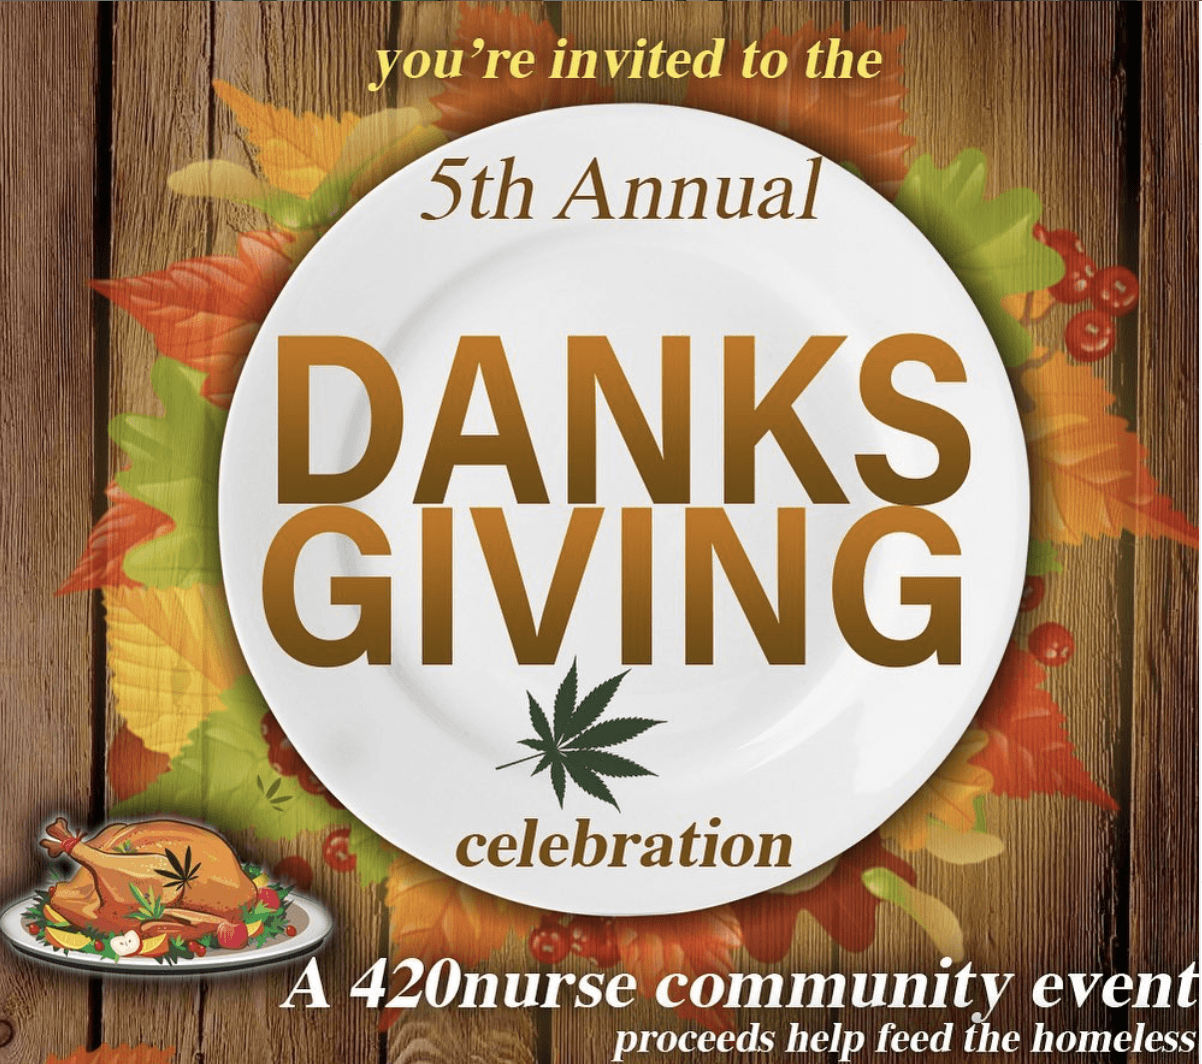 Danksgiving 5th Annual 420Nurses